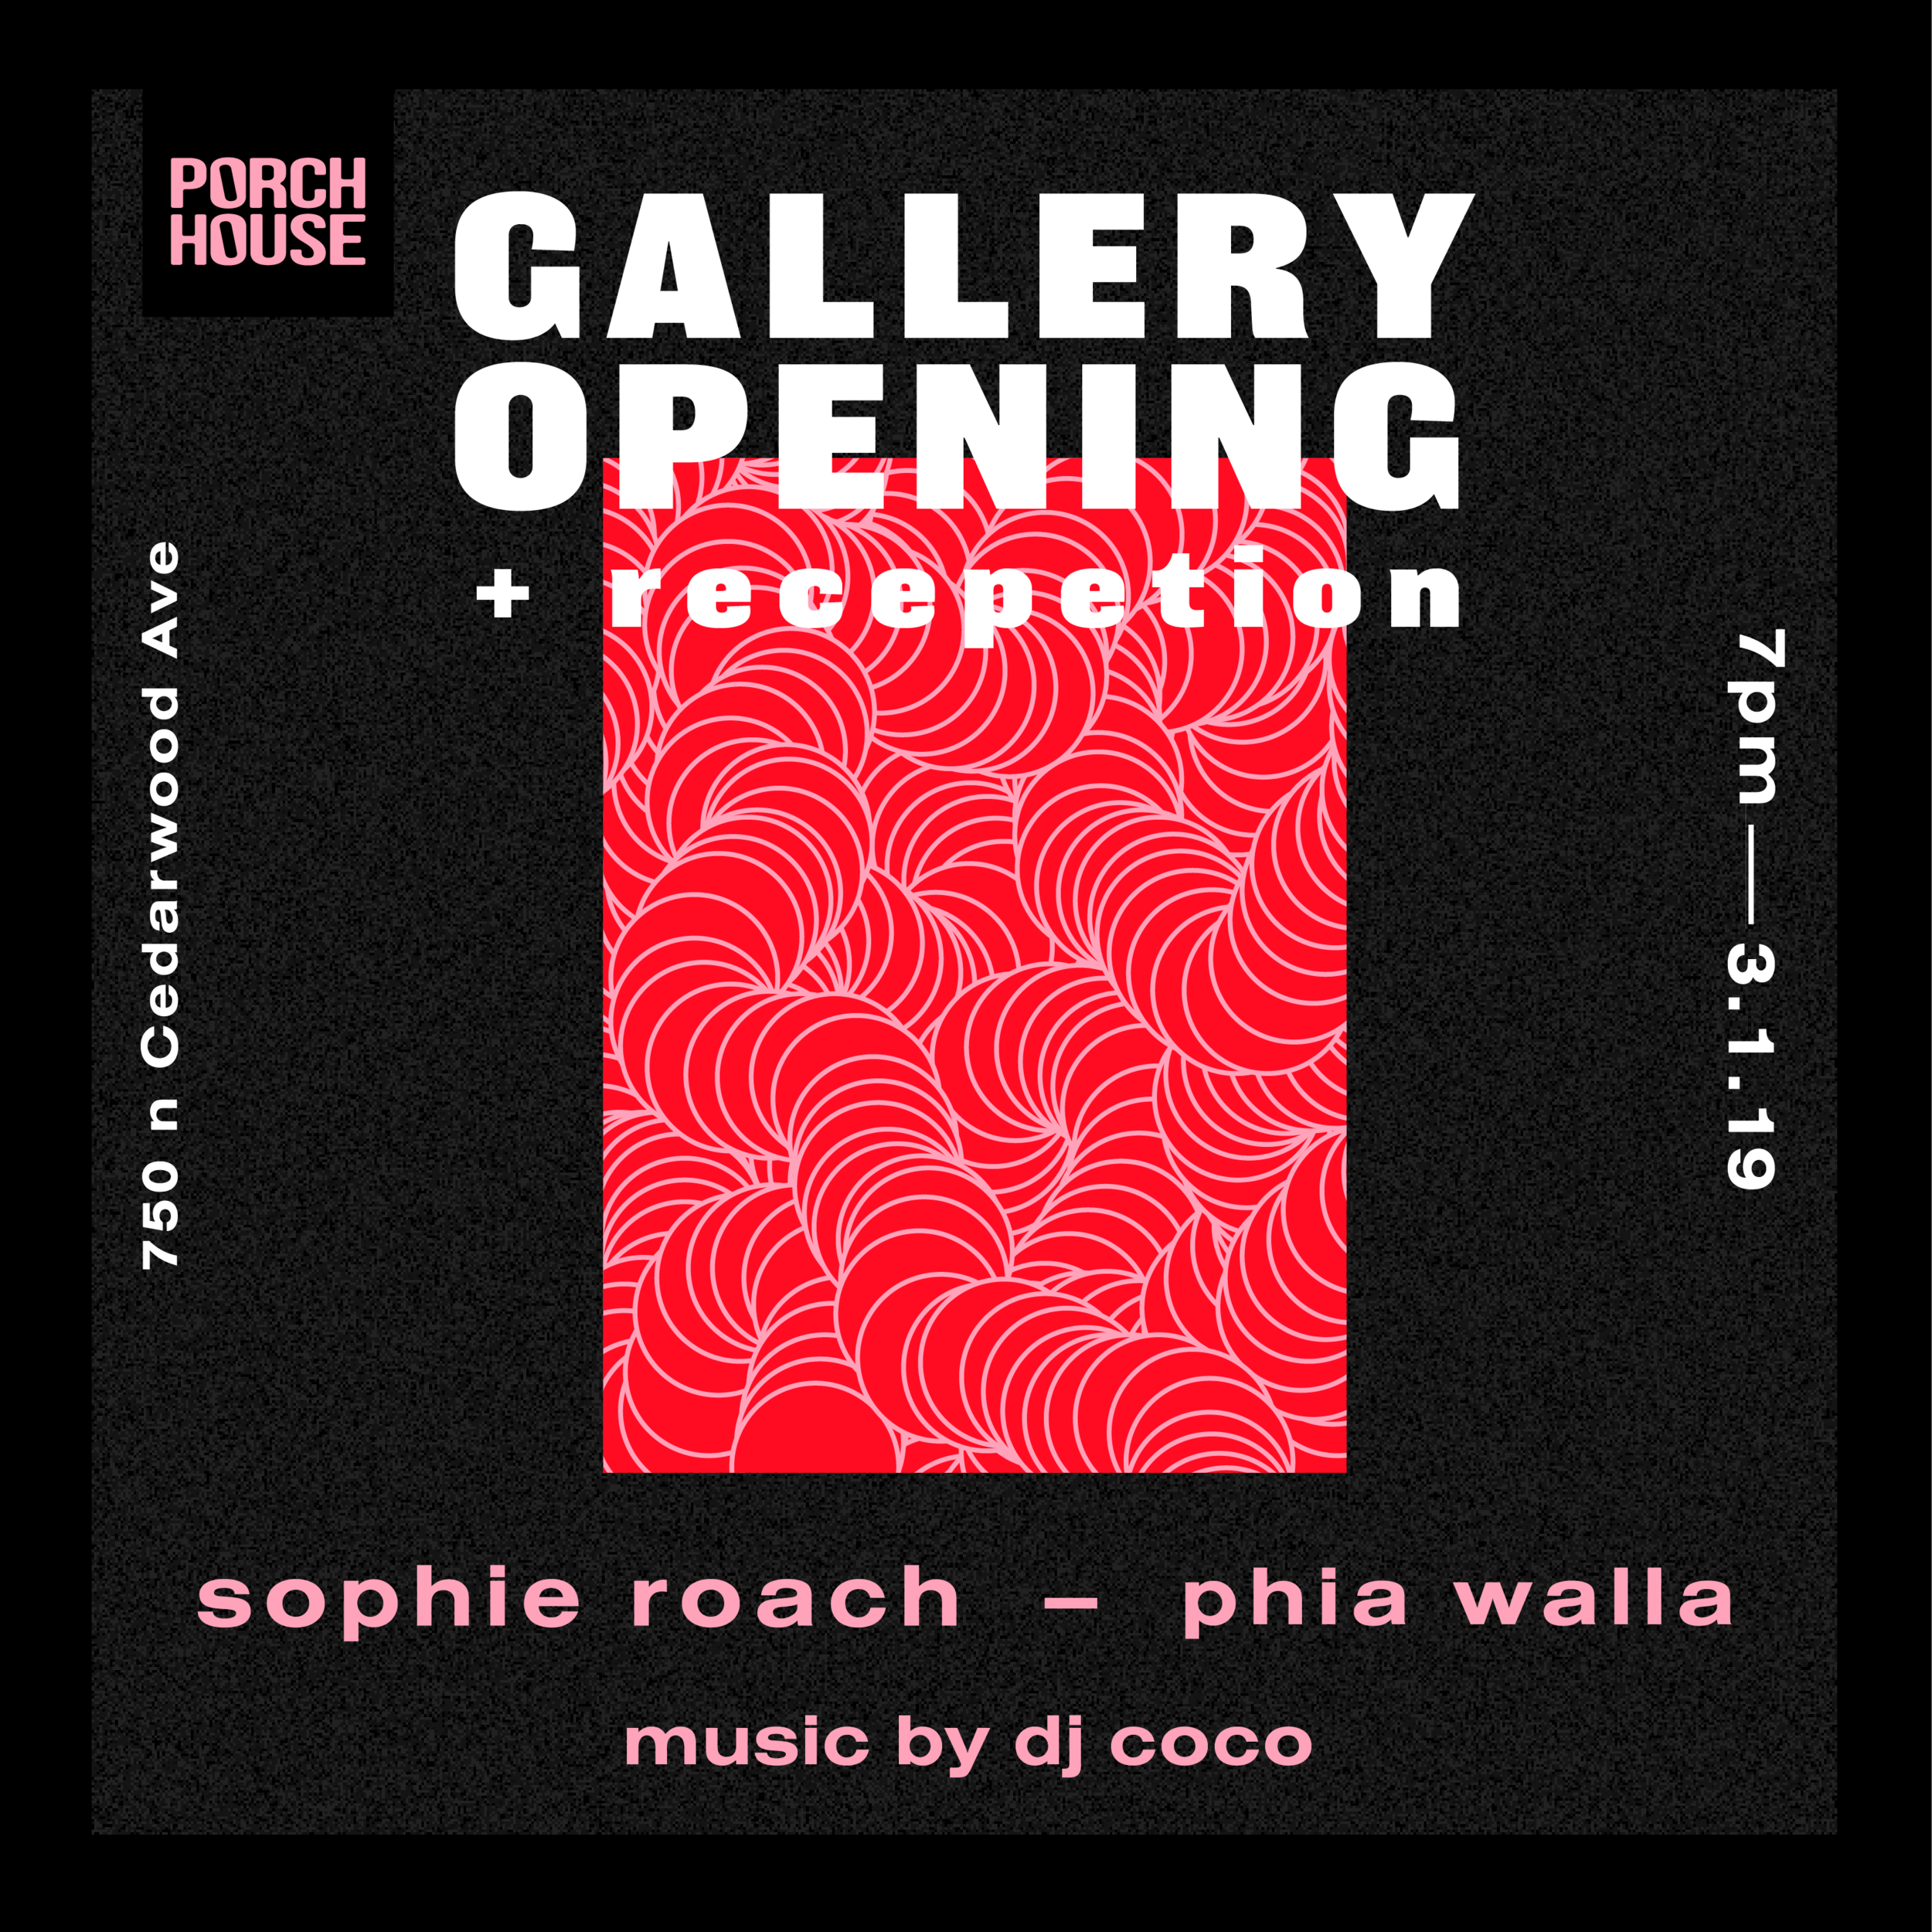 PORCH HOUSE gallery opening